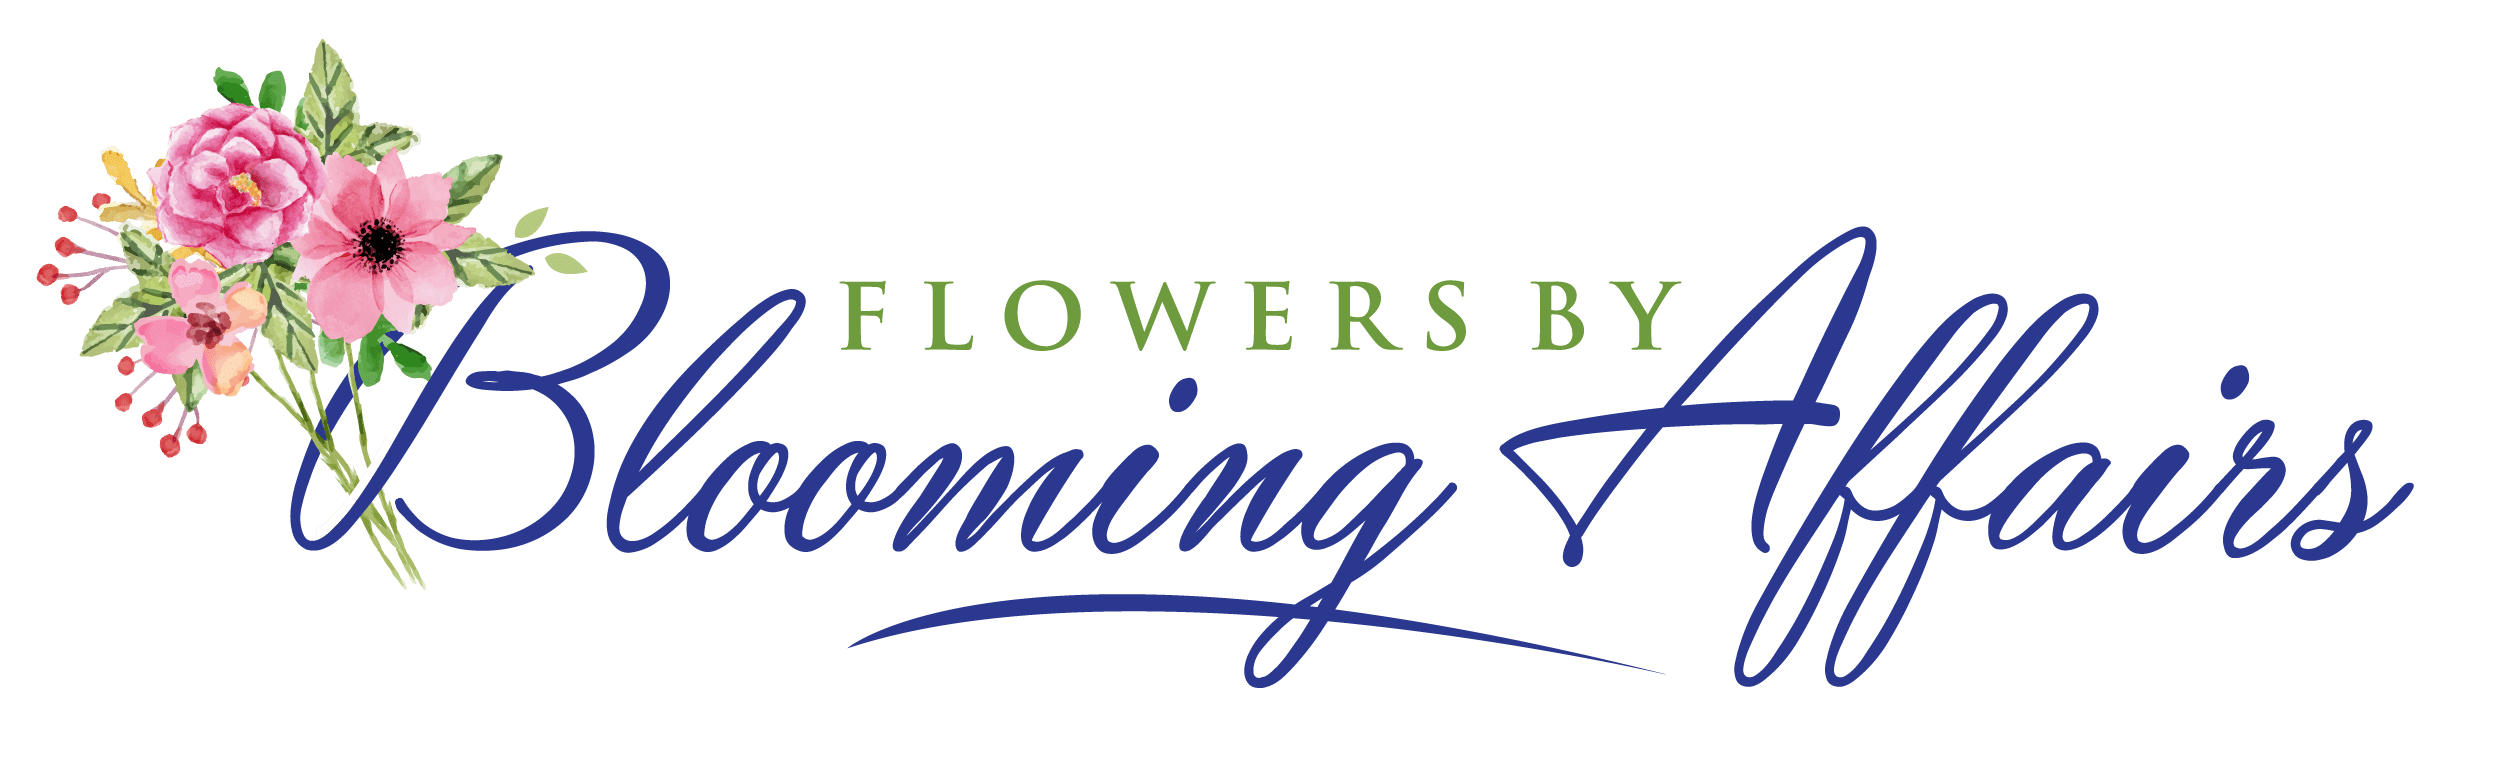 New York Florist | Flower Delivery by Flowers By Blooming Affairs